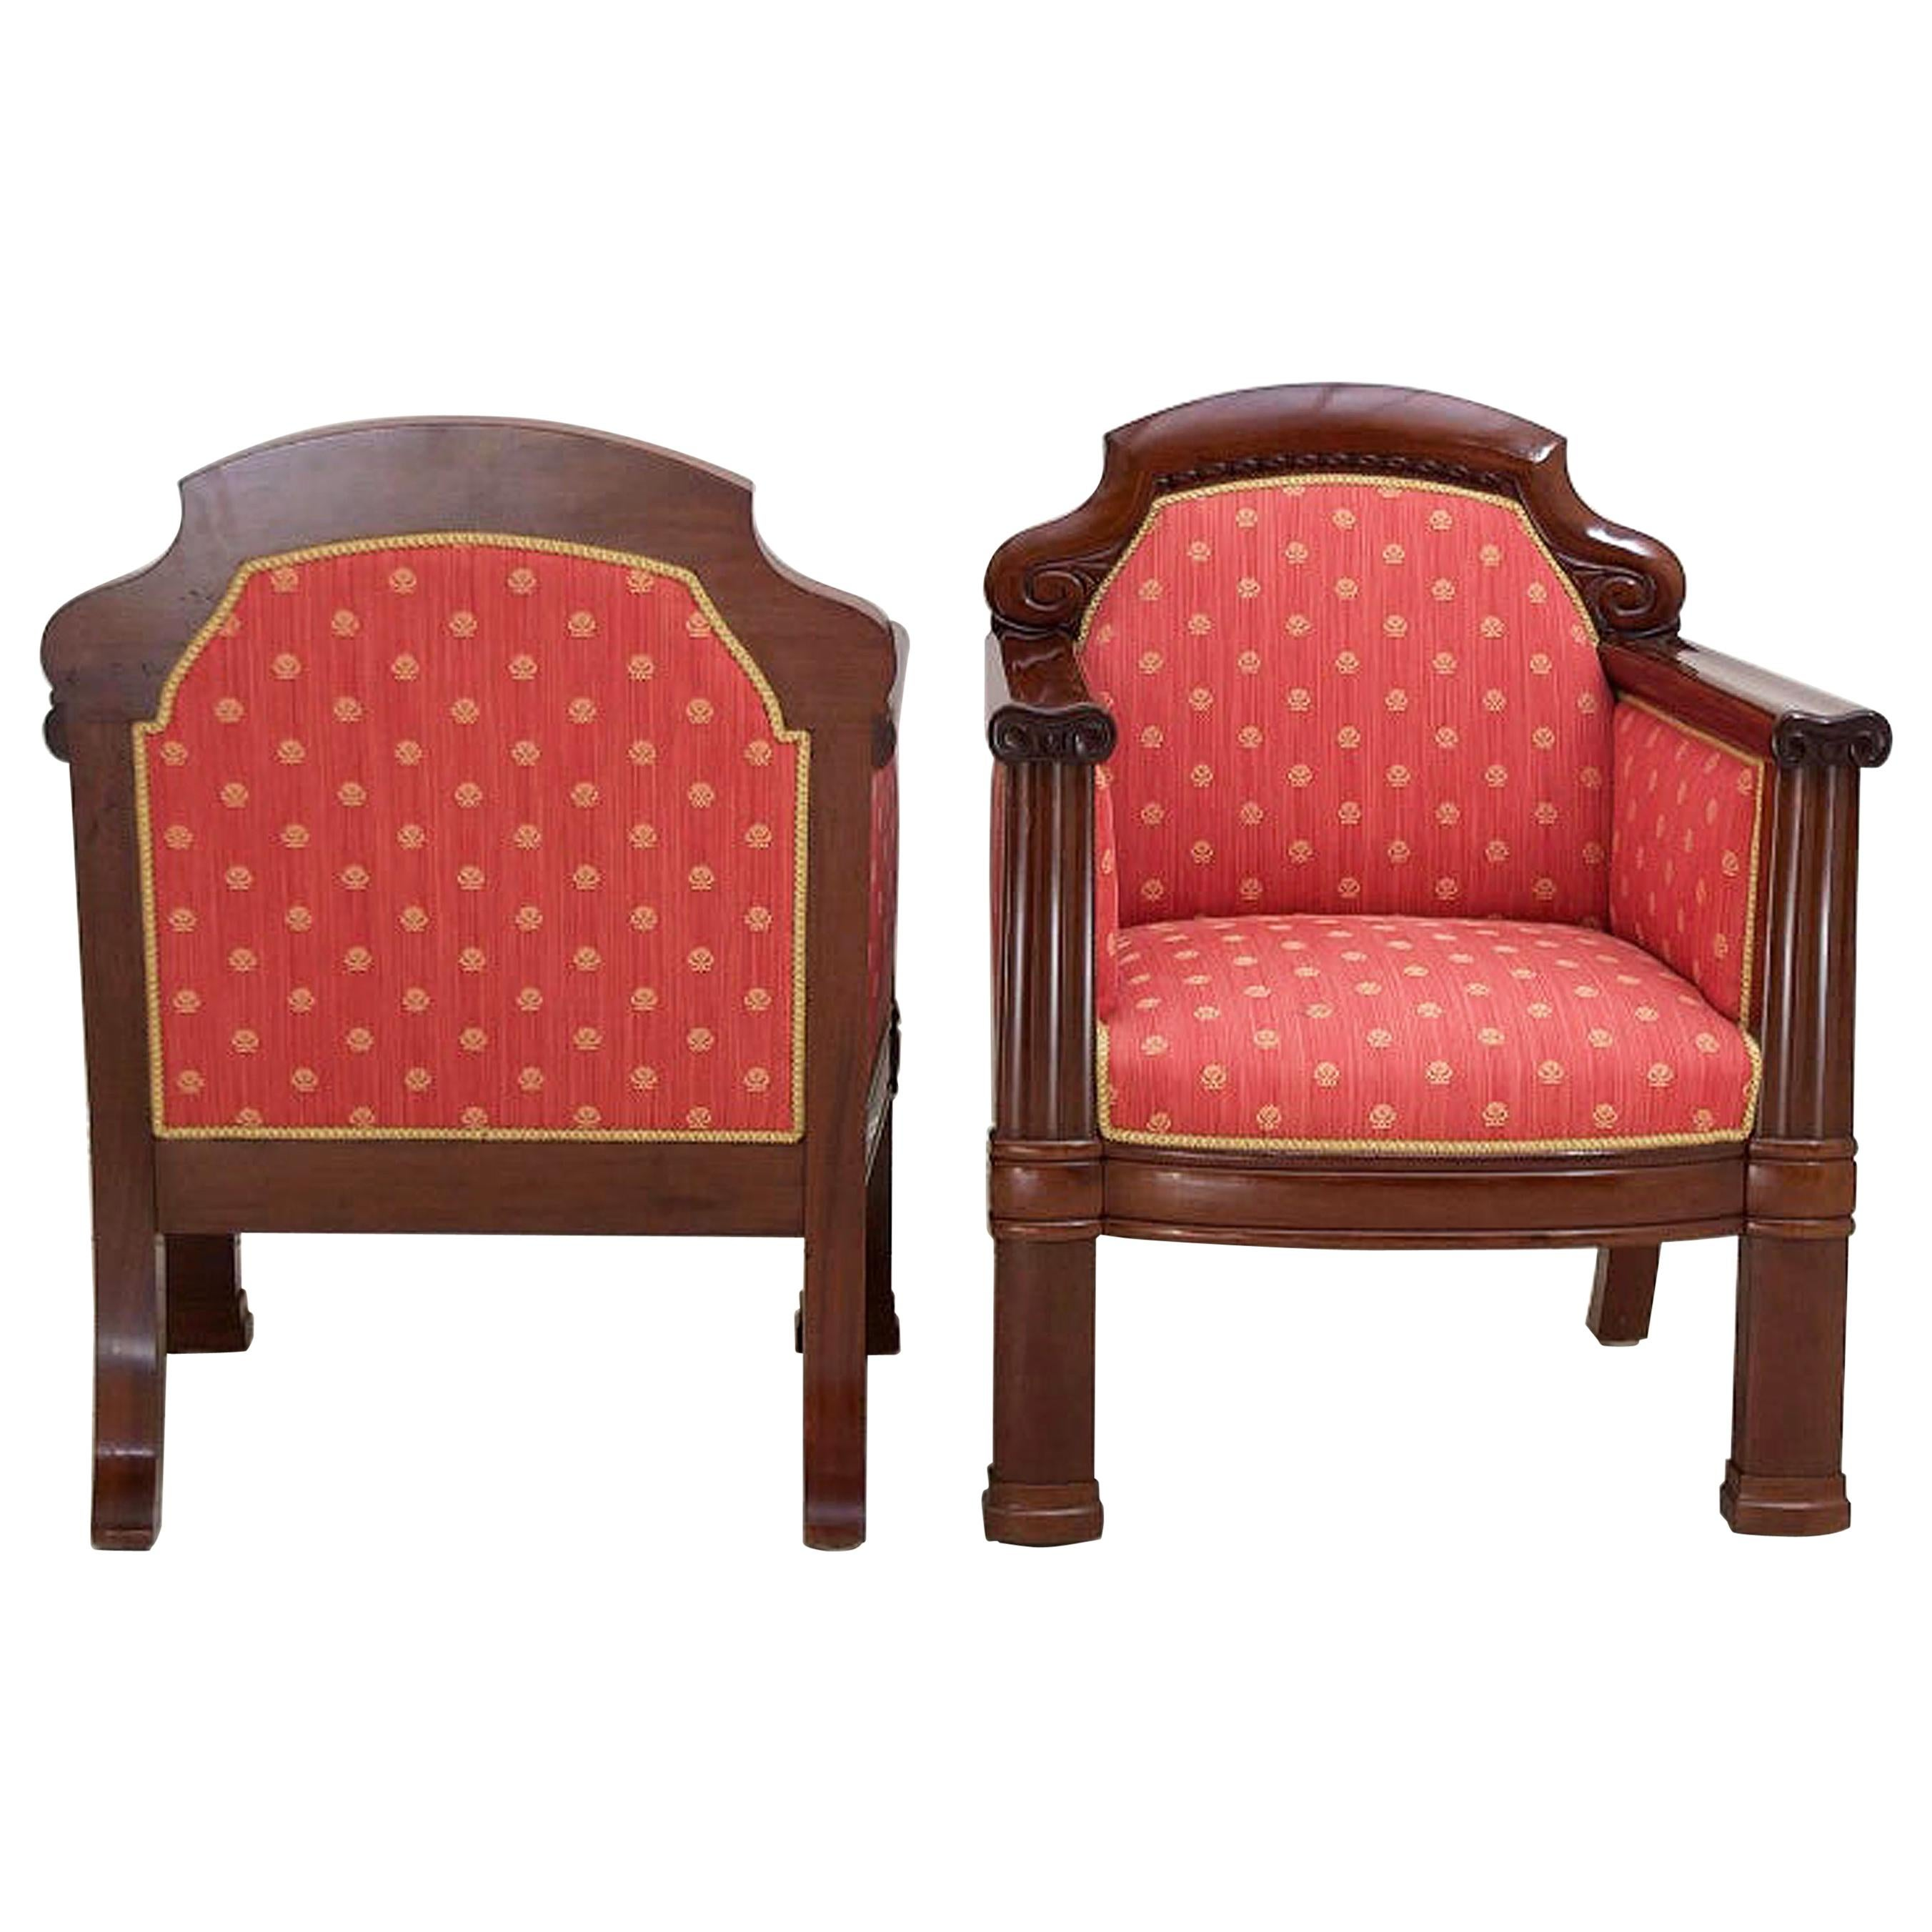 Pair of Danish Art Deco Club Chairs in Mahogany with Upholstery, circa 1920